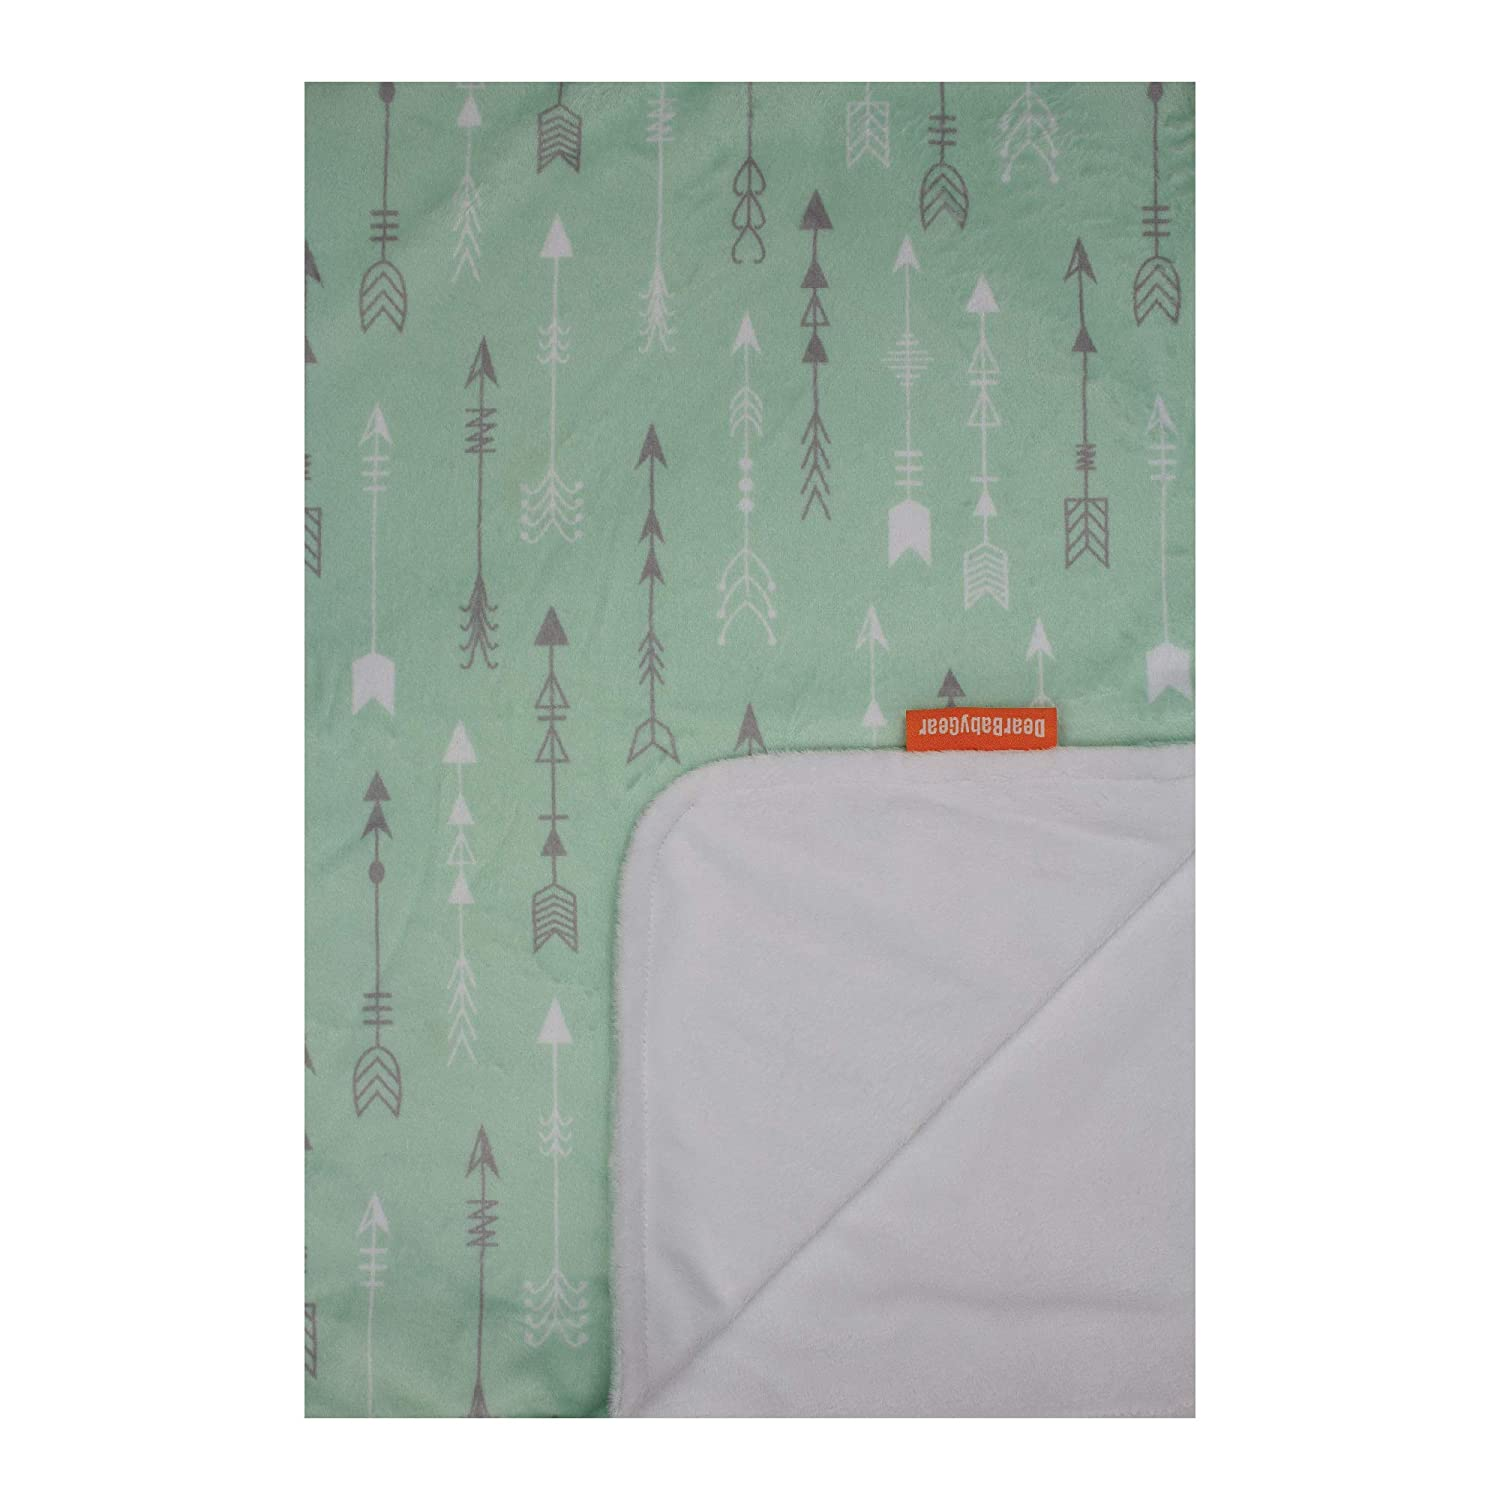 Dear Baby Gear Deluxe Baby Blankets, Double Layer, Grey and White Arrows on Mint Green, Smooth Minky, White